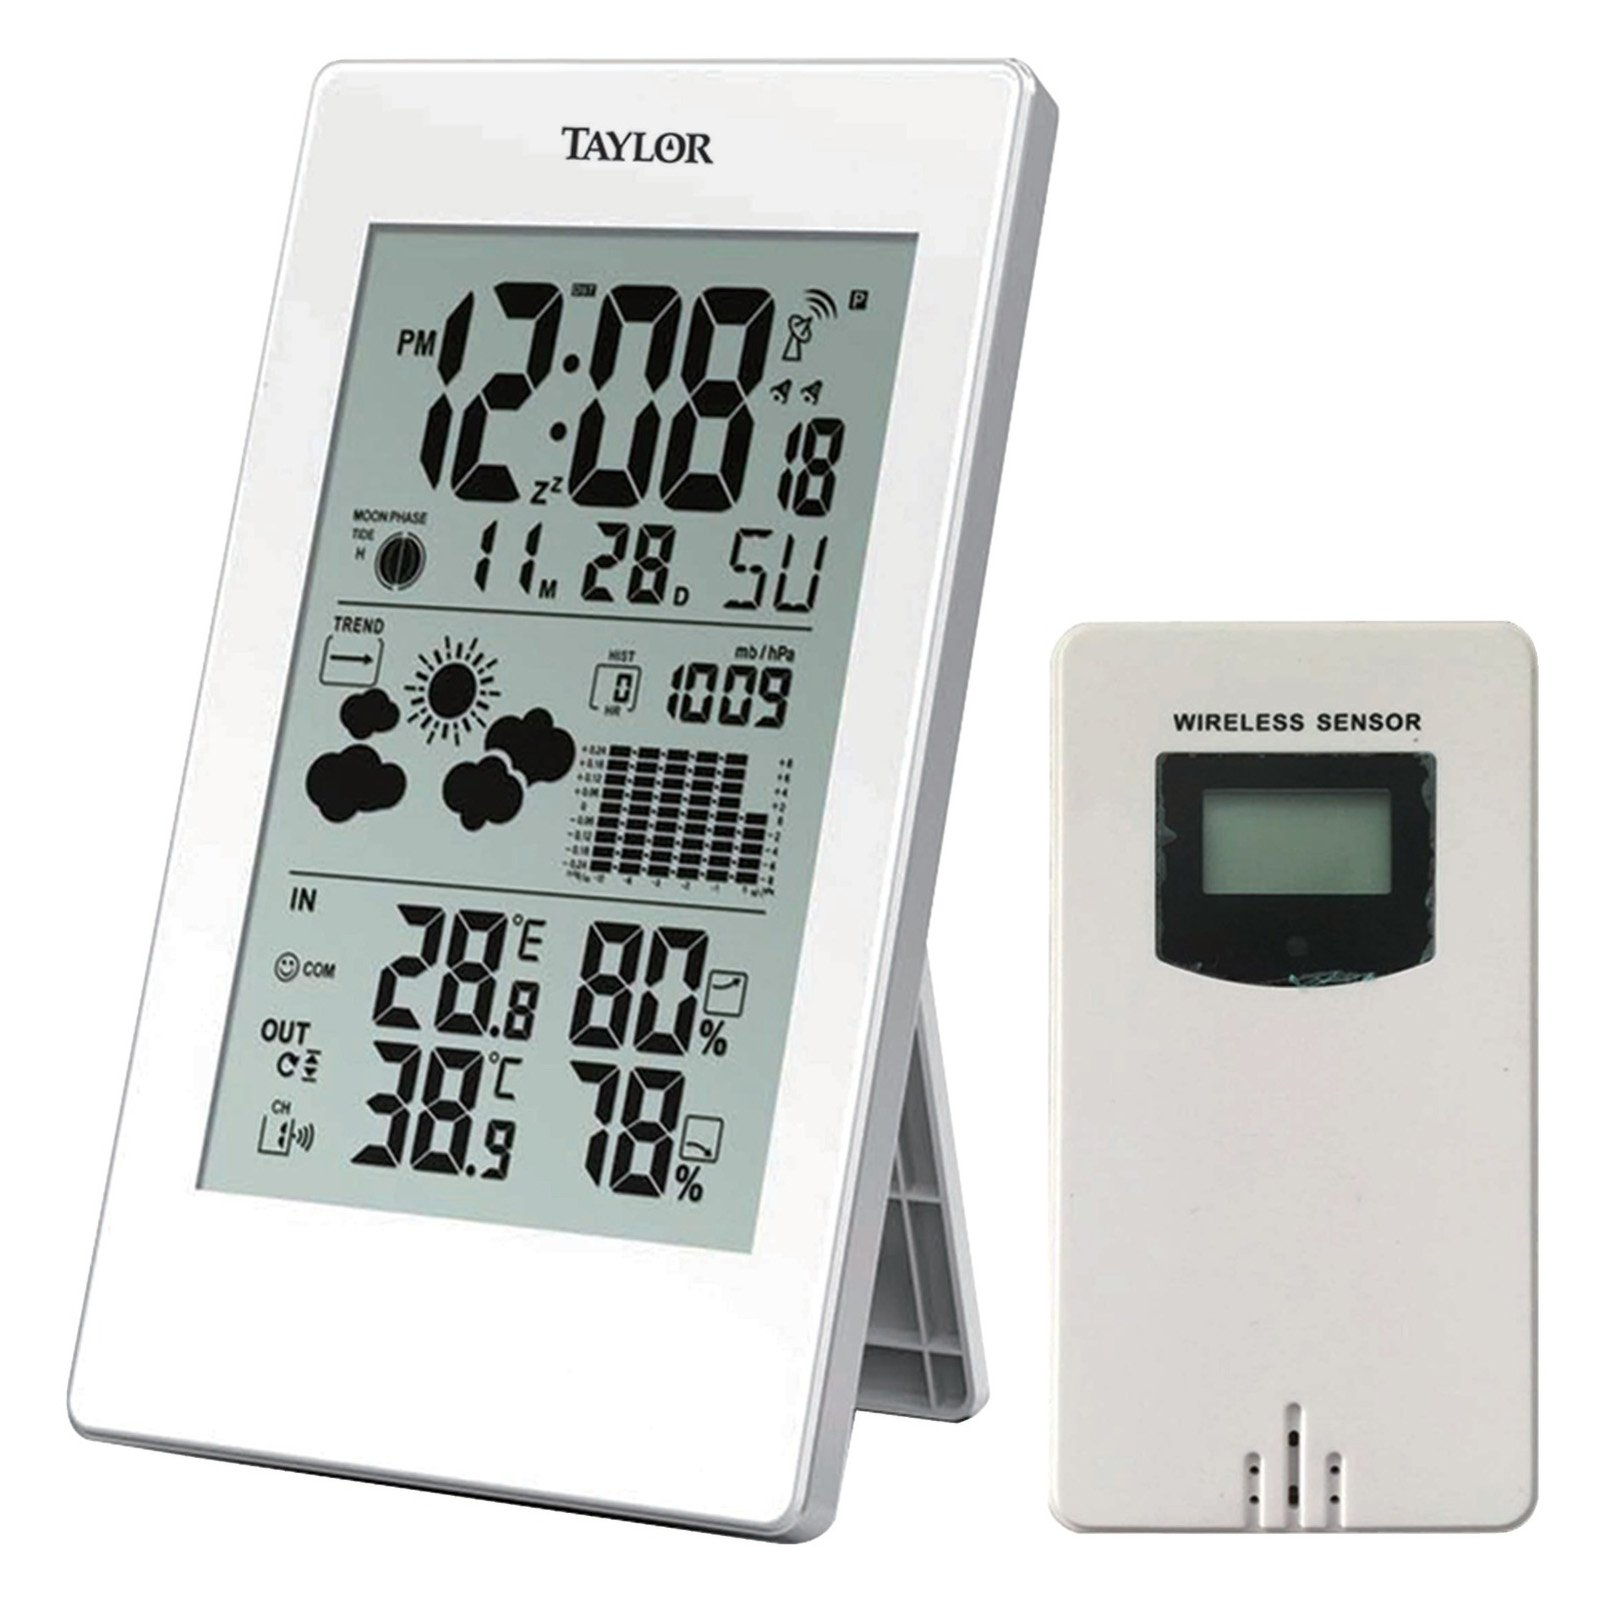 Taylor Digital Weather Forecaster with Barometer and Alarm Clock